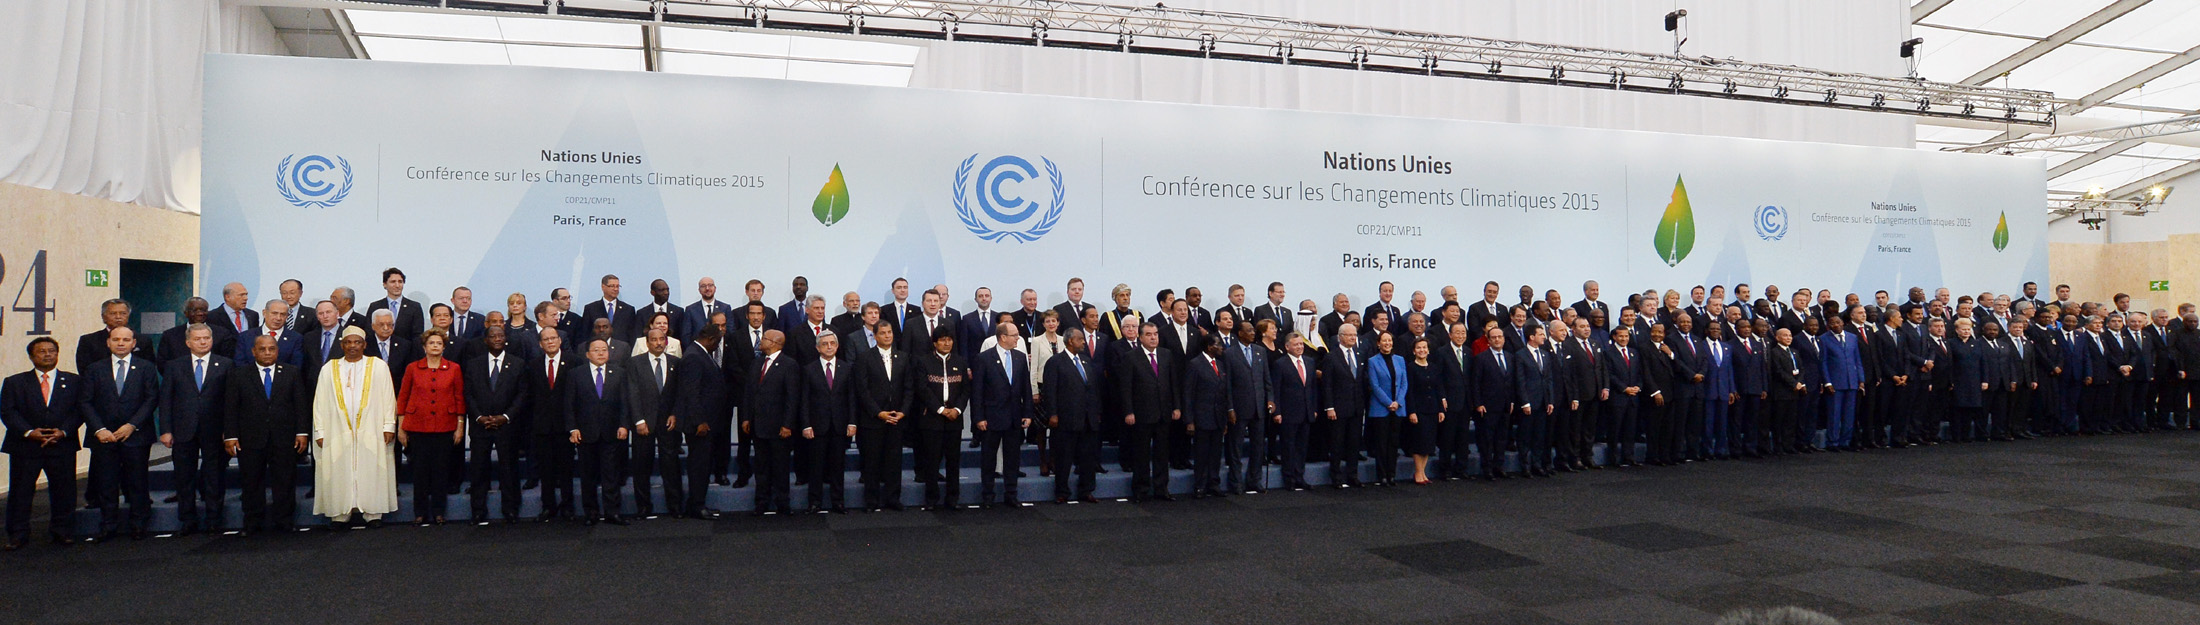 Paris climate summit in November